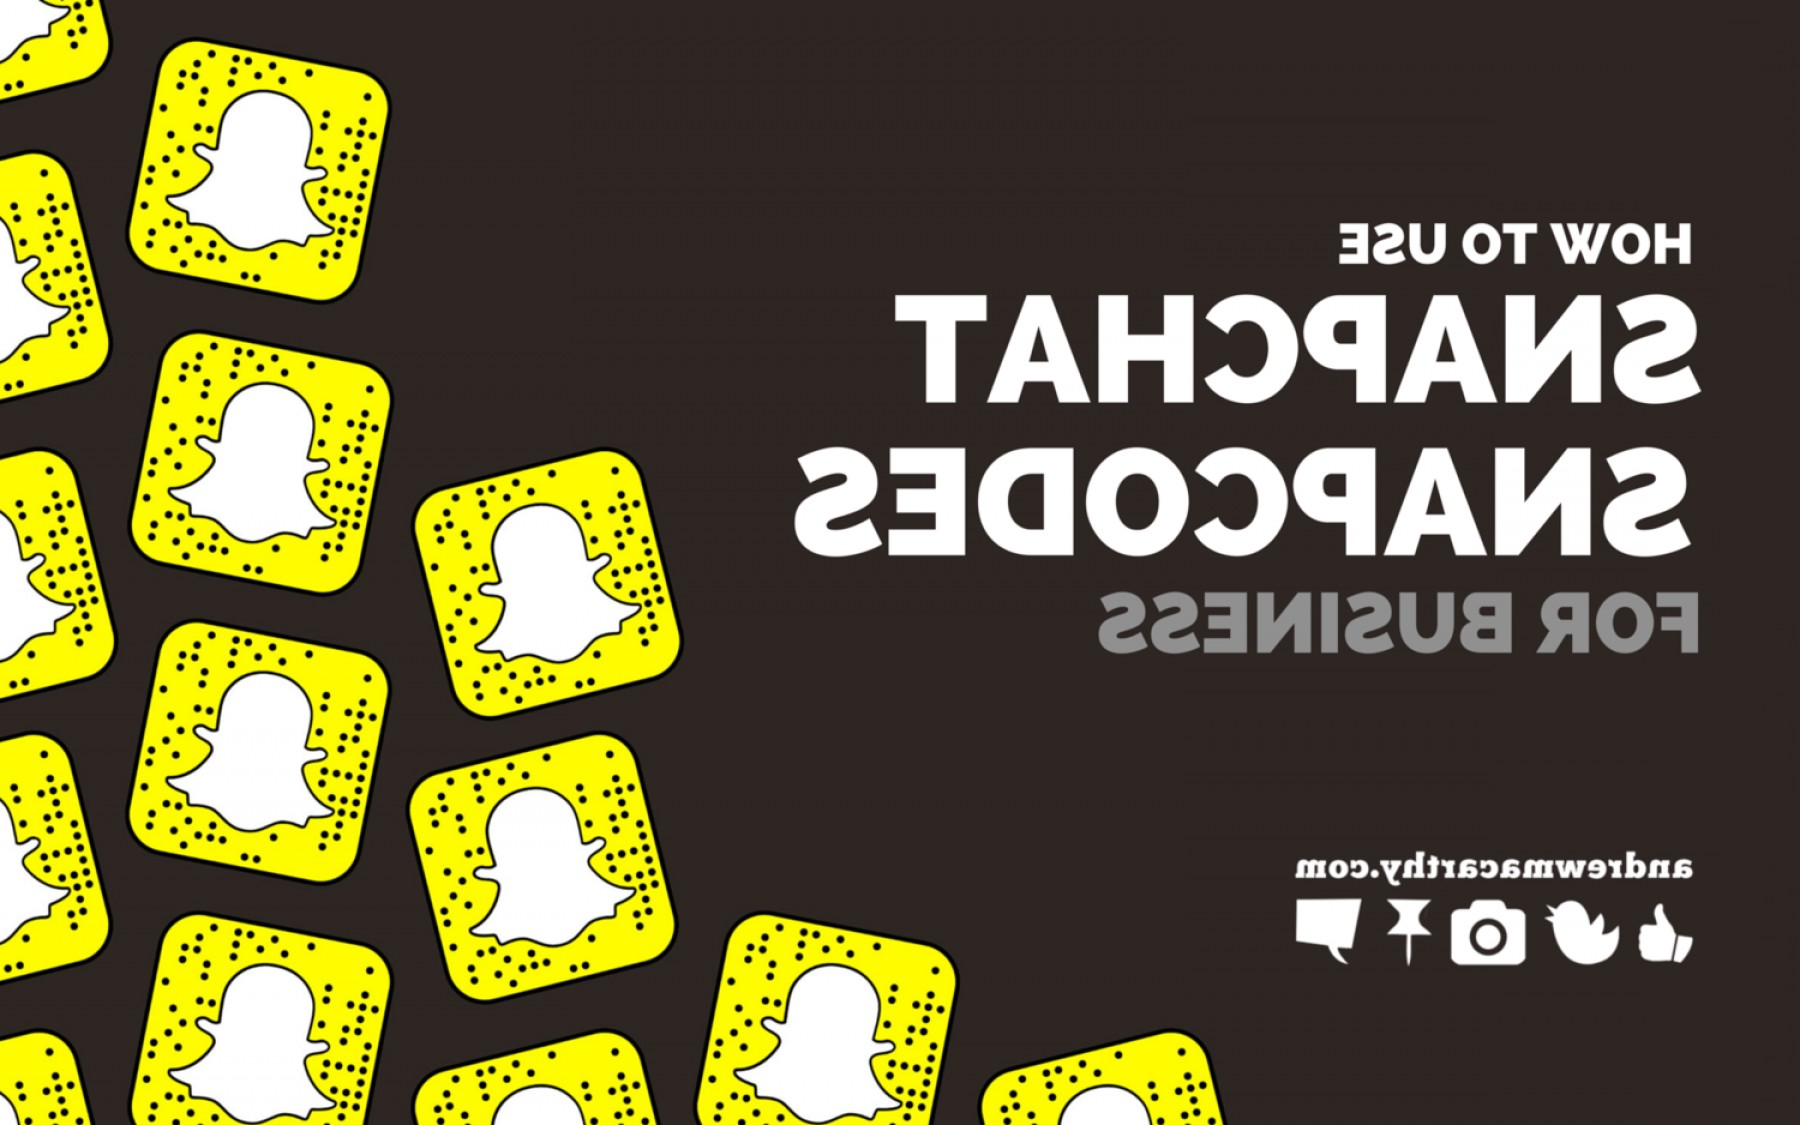 Here's Your Sign Vector: Snapchat Snapcodes For Business Download Image Vector